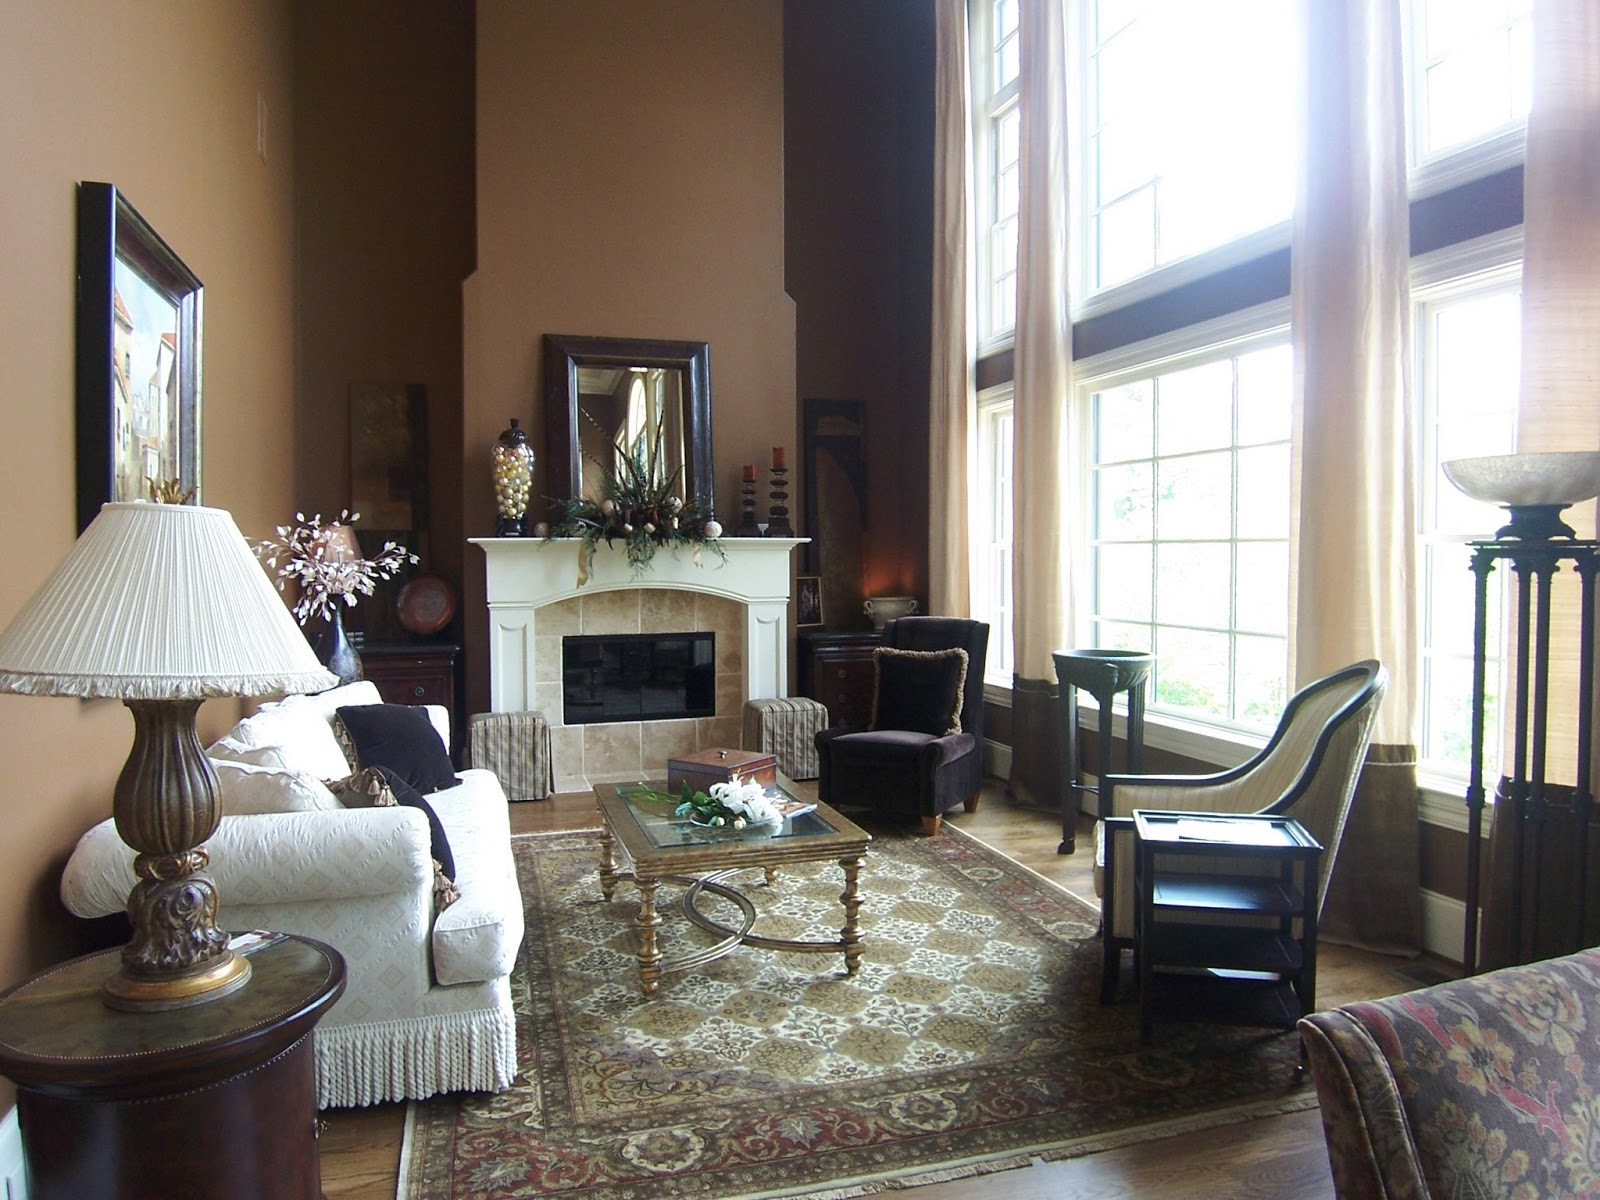 greensboro in and elegant emerging principal img north by tabletop interior carolina designers author greeley blog nc kathy page kathryn entertaining trends designer industry presents the c